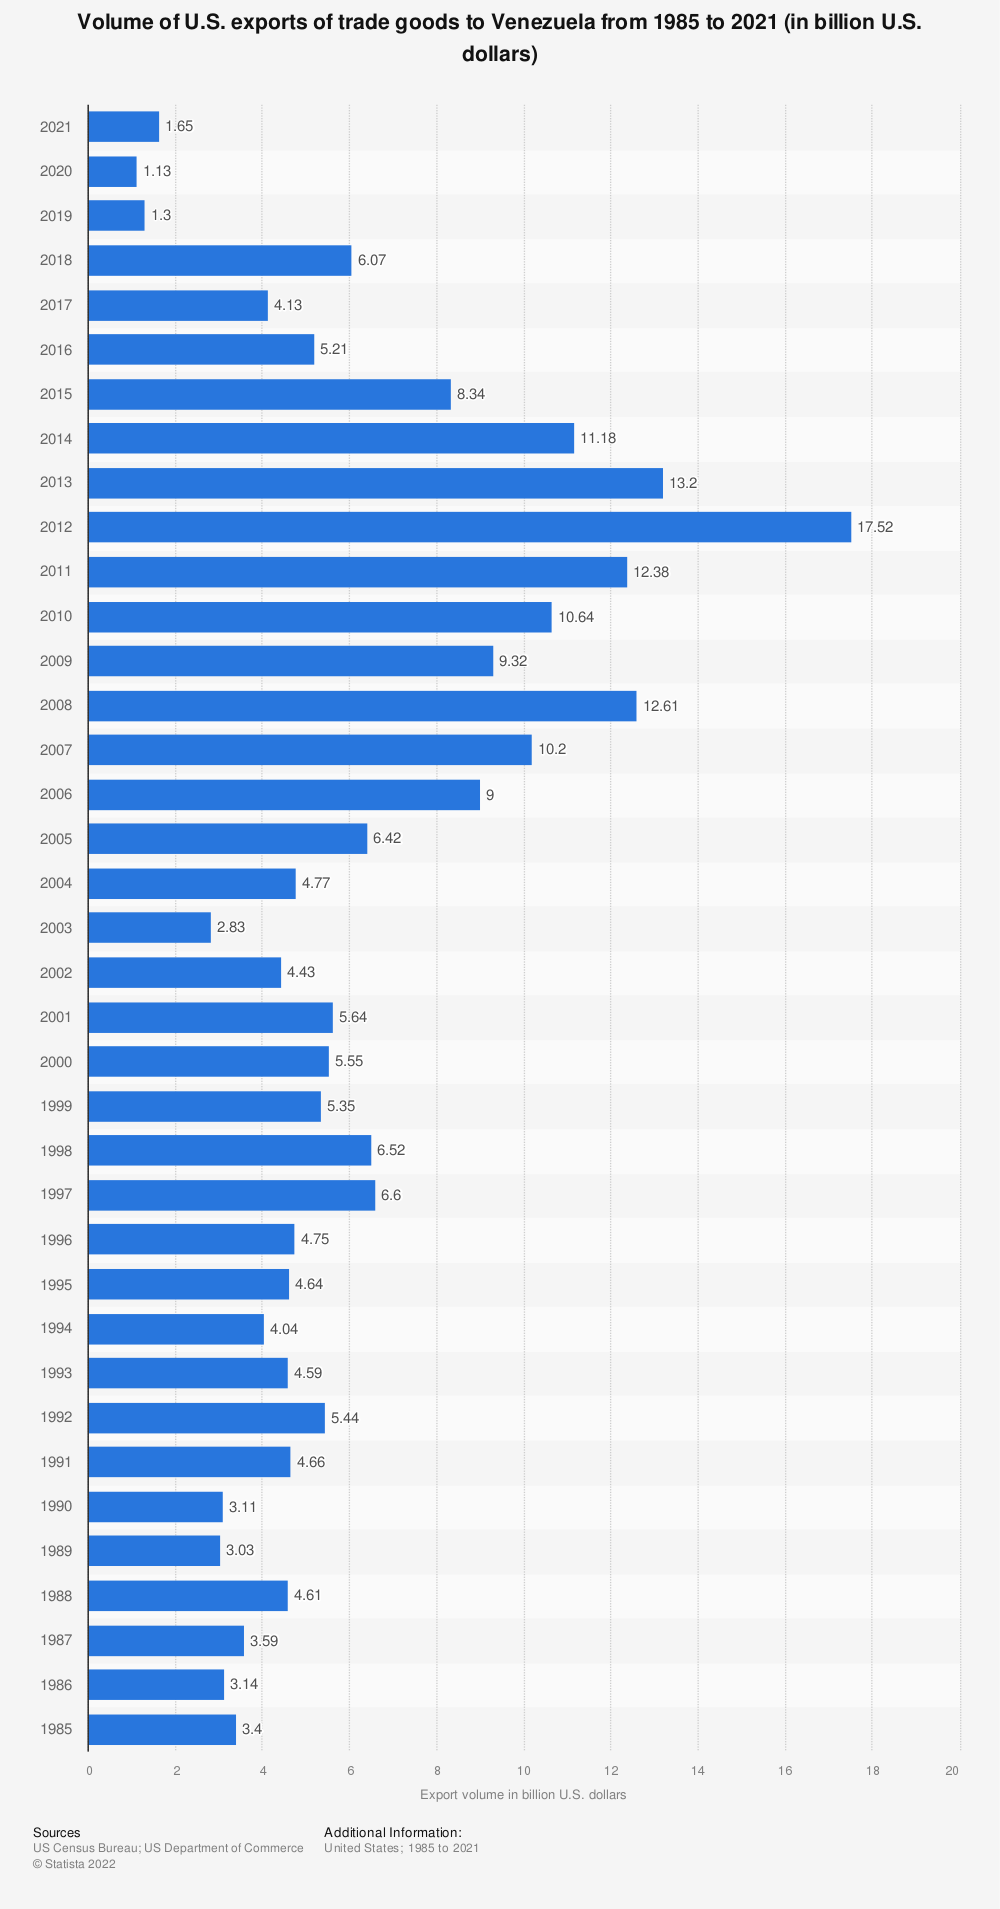 Statistic: Volume of U.S. exports of trade goods to Venezuela from 1985 to 2019 (in billion U.S. dollars) | Statista